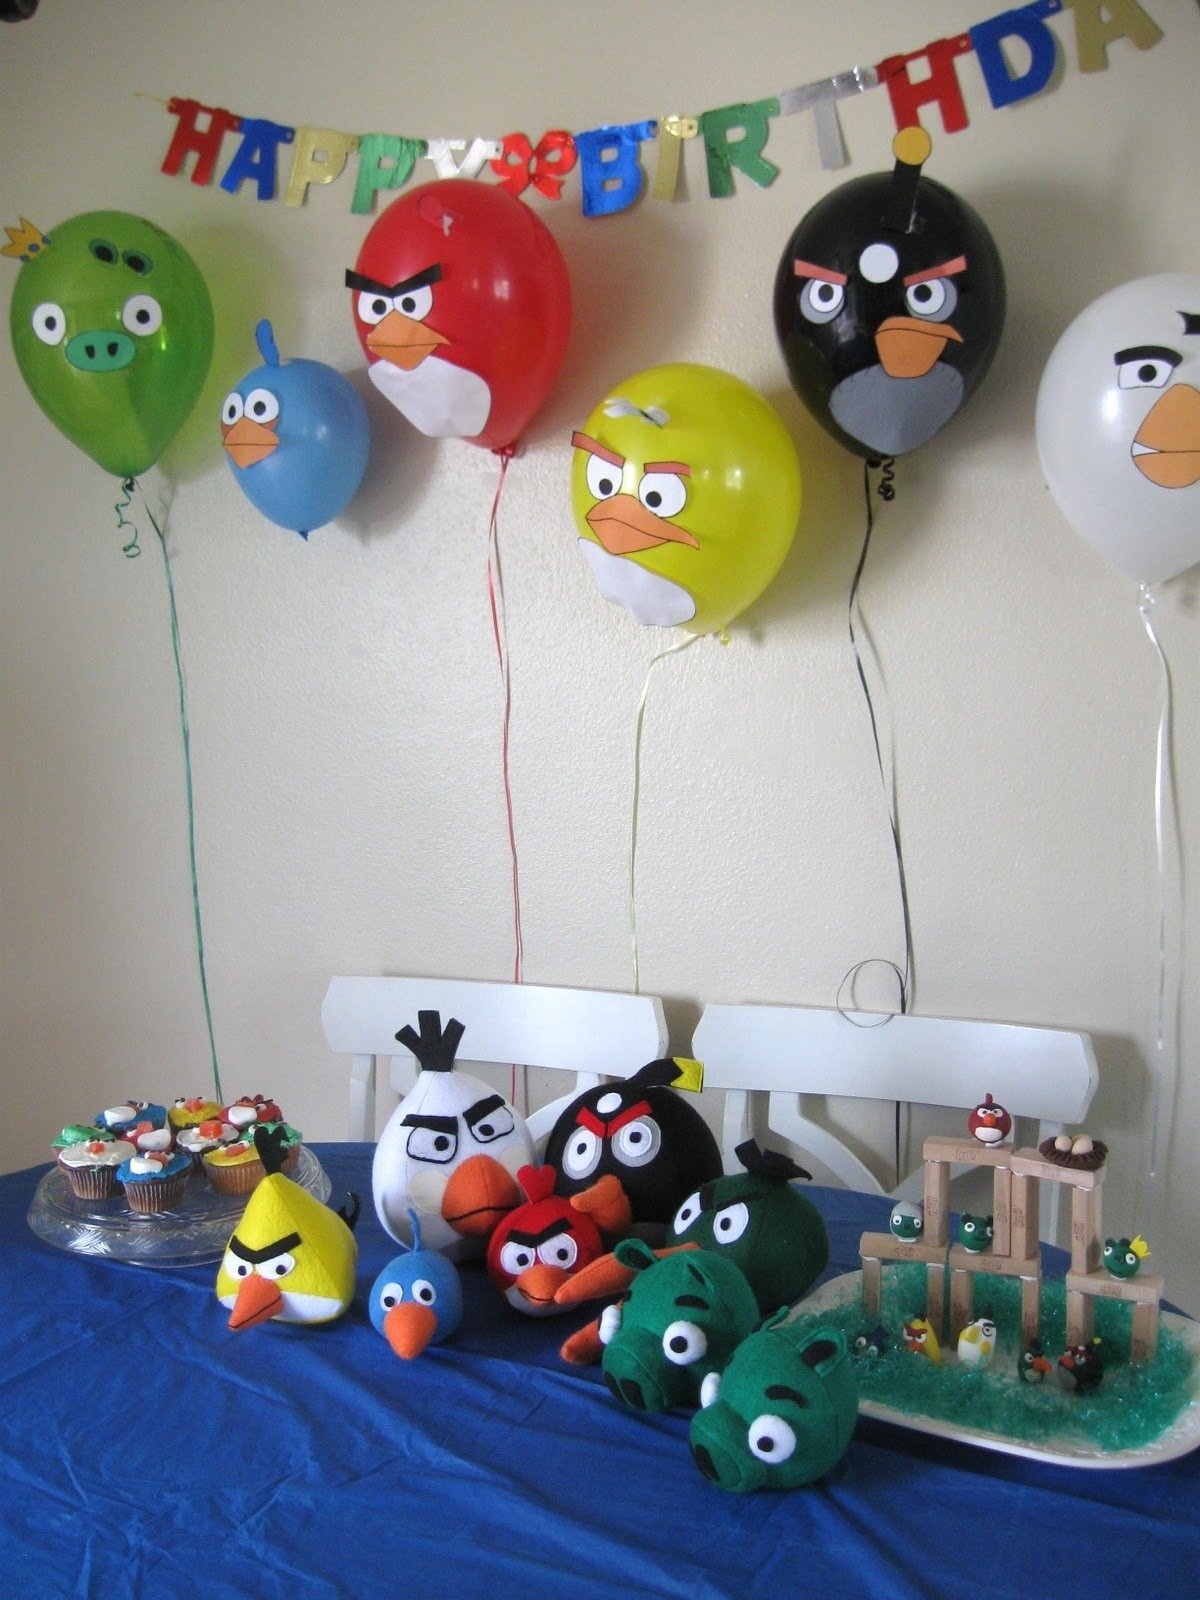 10 Lovely Birthday Ideas For 5 Year Old Boy Angry Birds Balloons Jacks Next Party